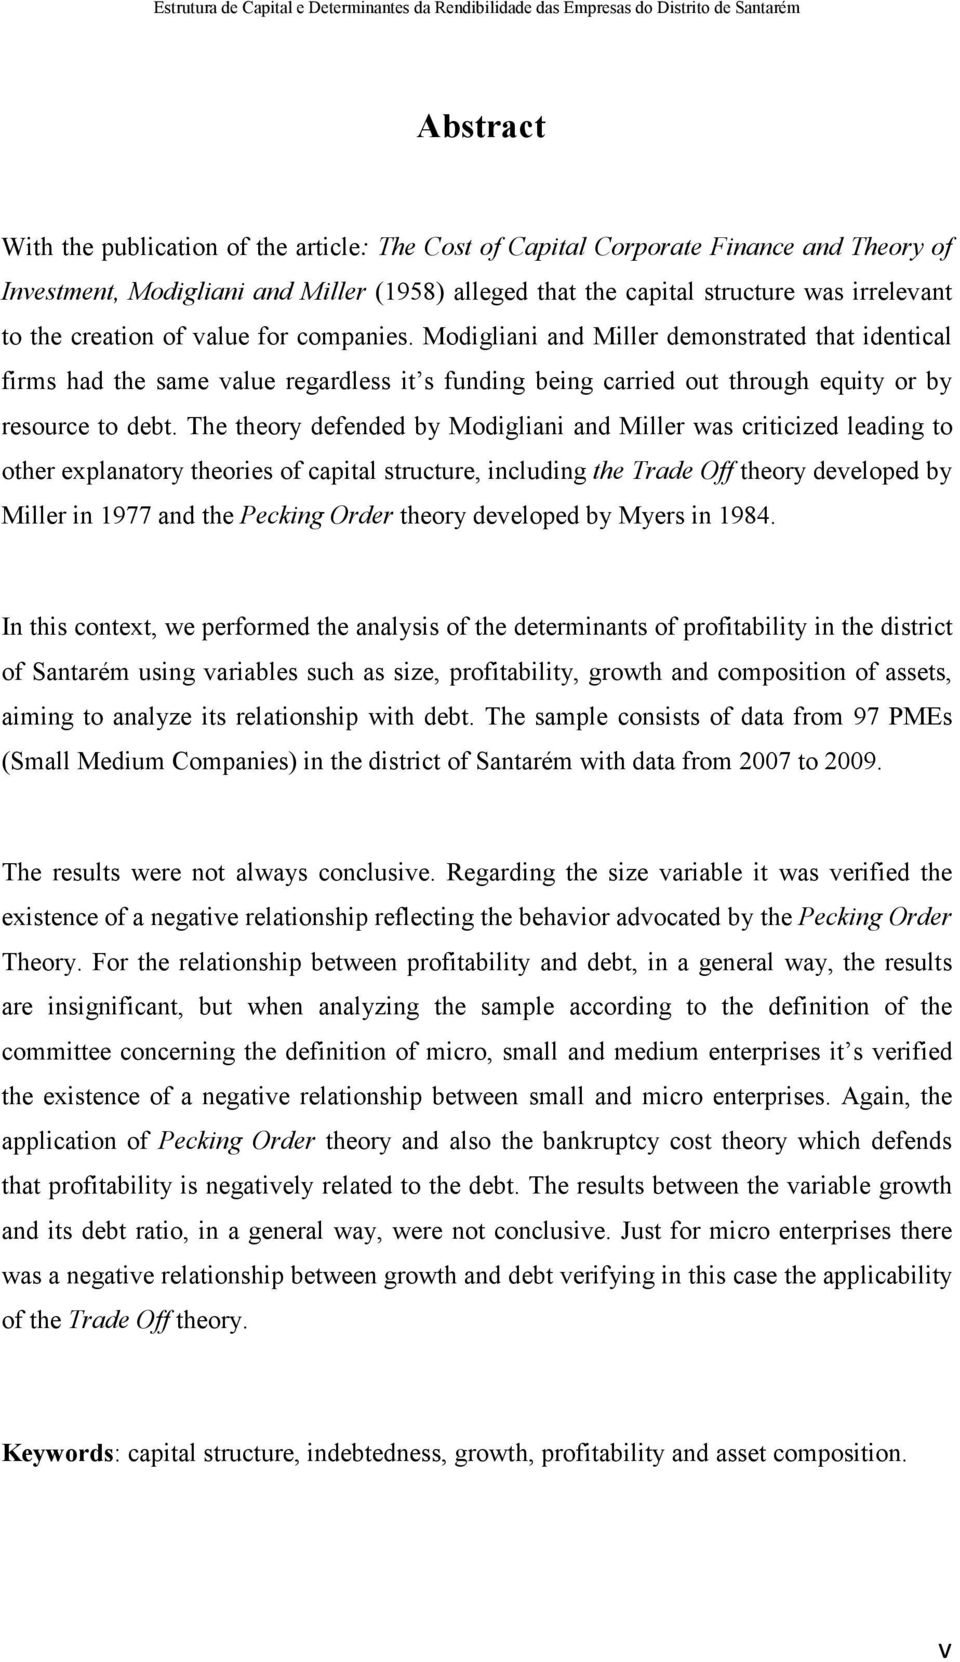 The theory defended by Modigliani and Miller was criticized leading to other explanatory theories of capital structure, including the Trade Off theory developed by Miller in 1977 and the Pecking